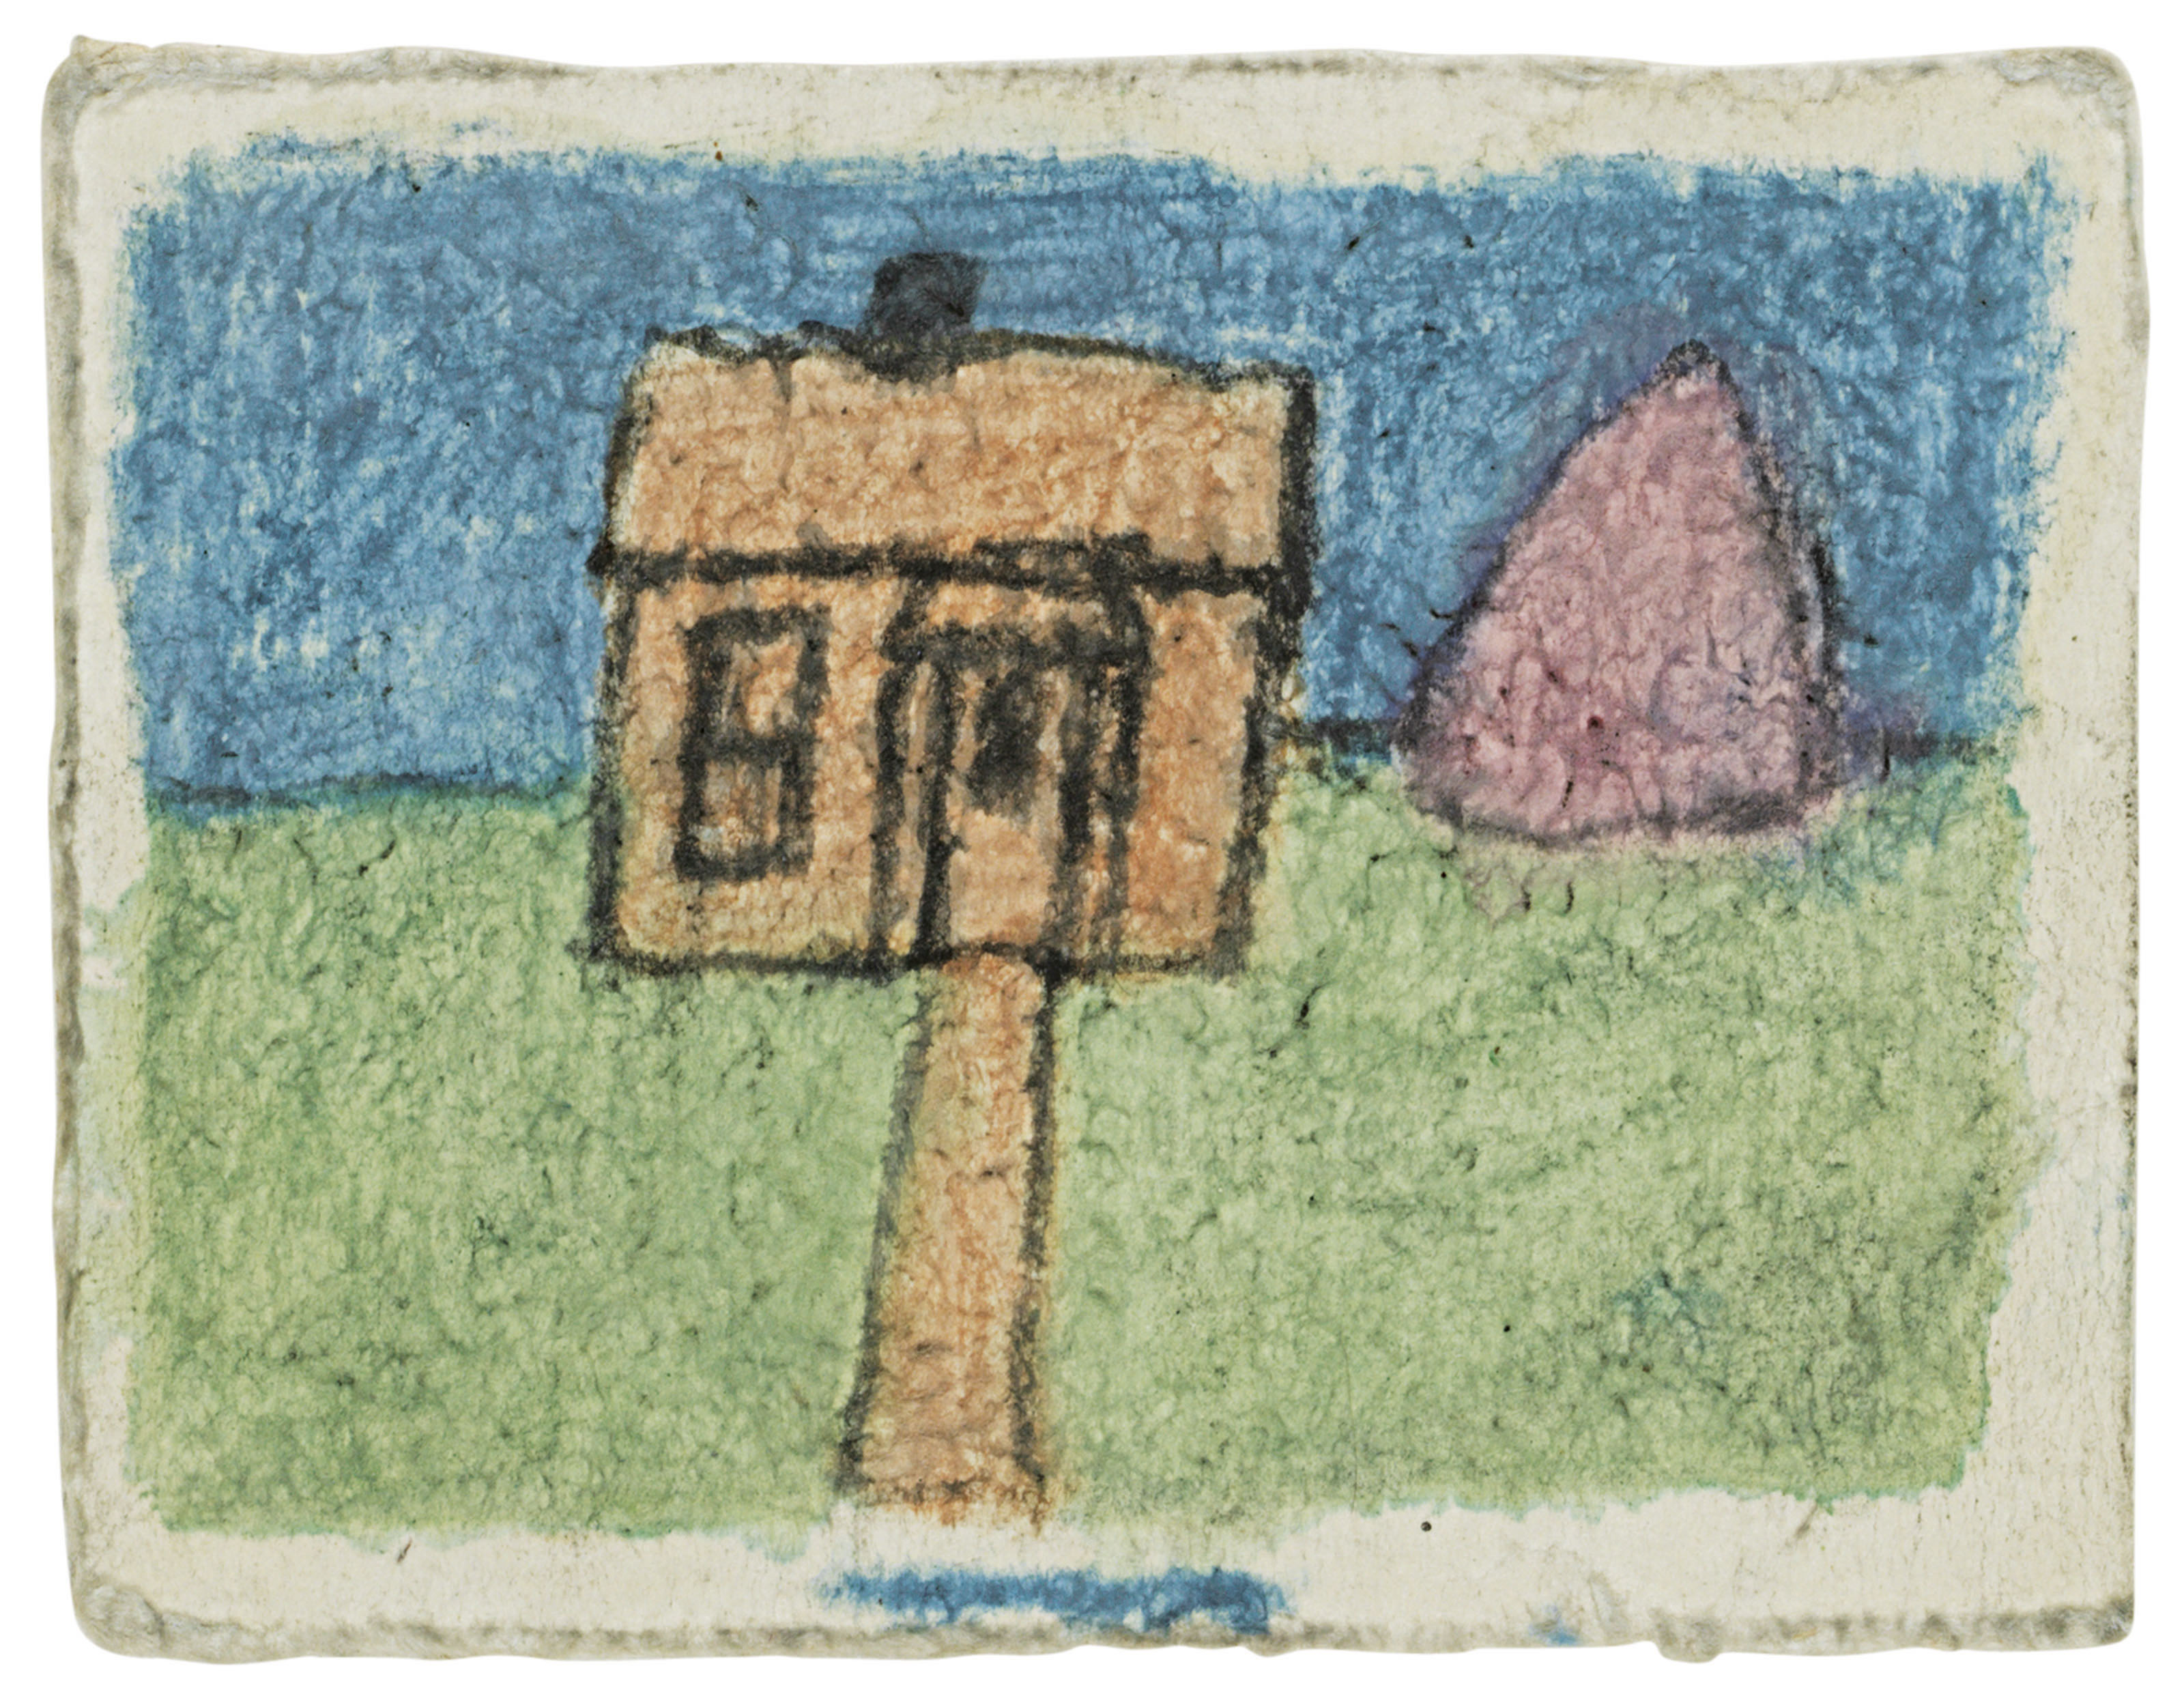 Untitled (Dream House with Tree in Colored Pulp)